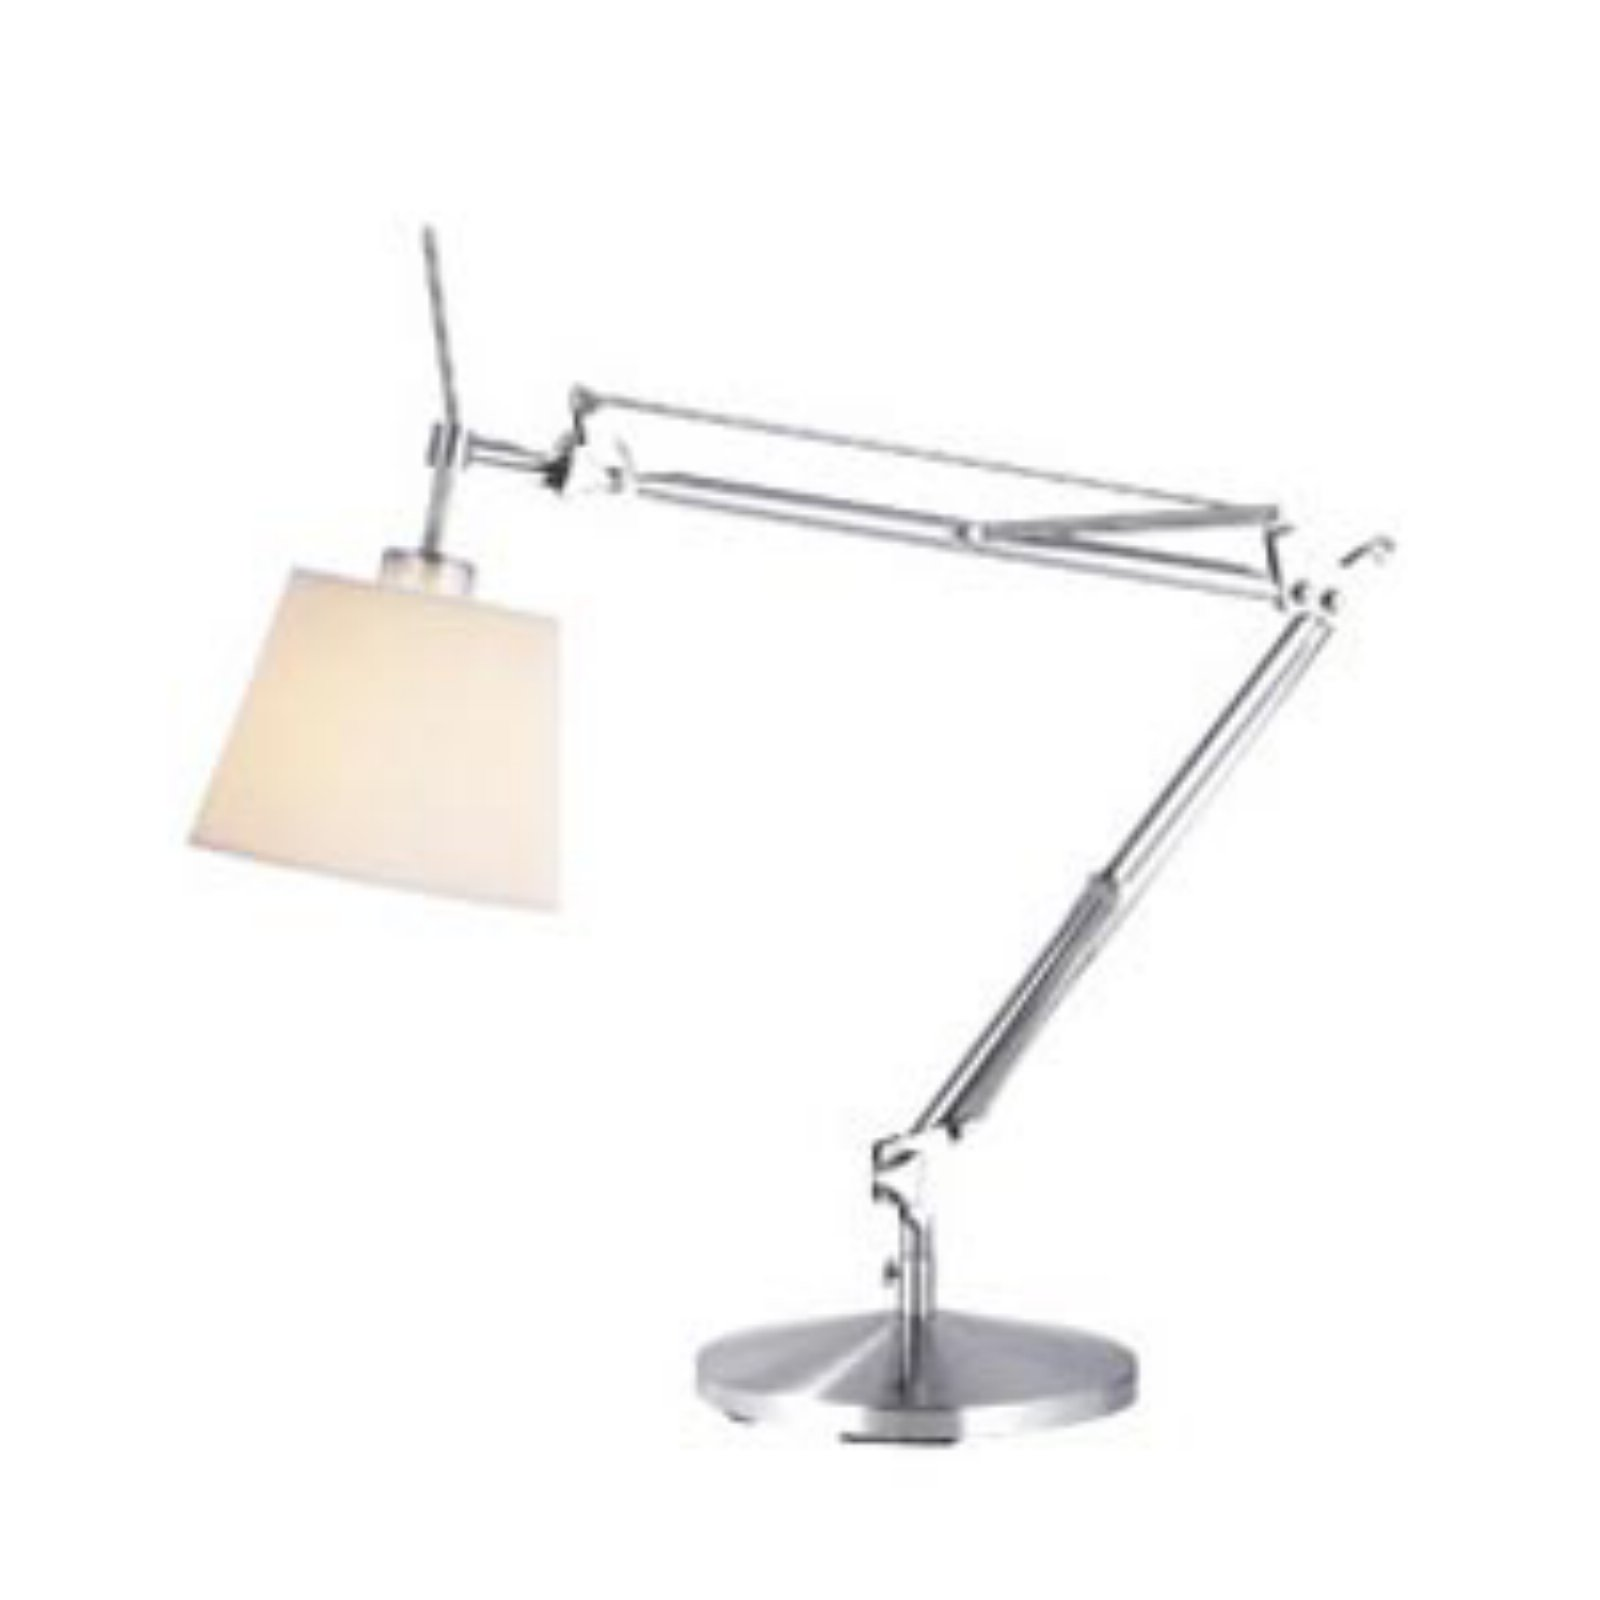 Adesso Architect Desk Lamp - Brushed Steel